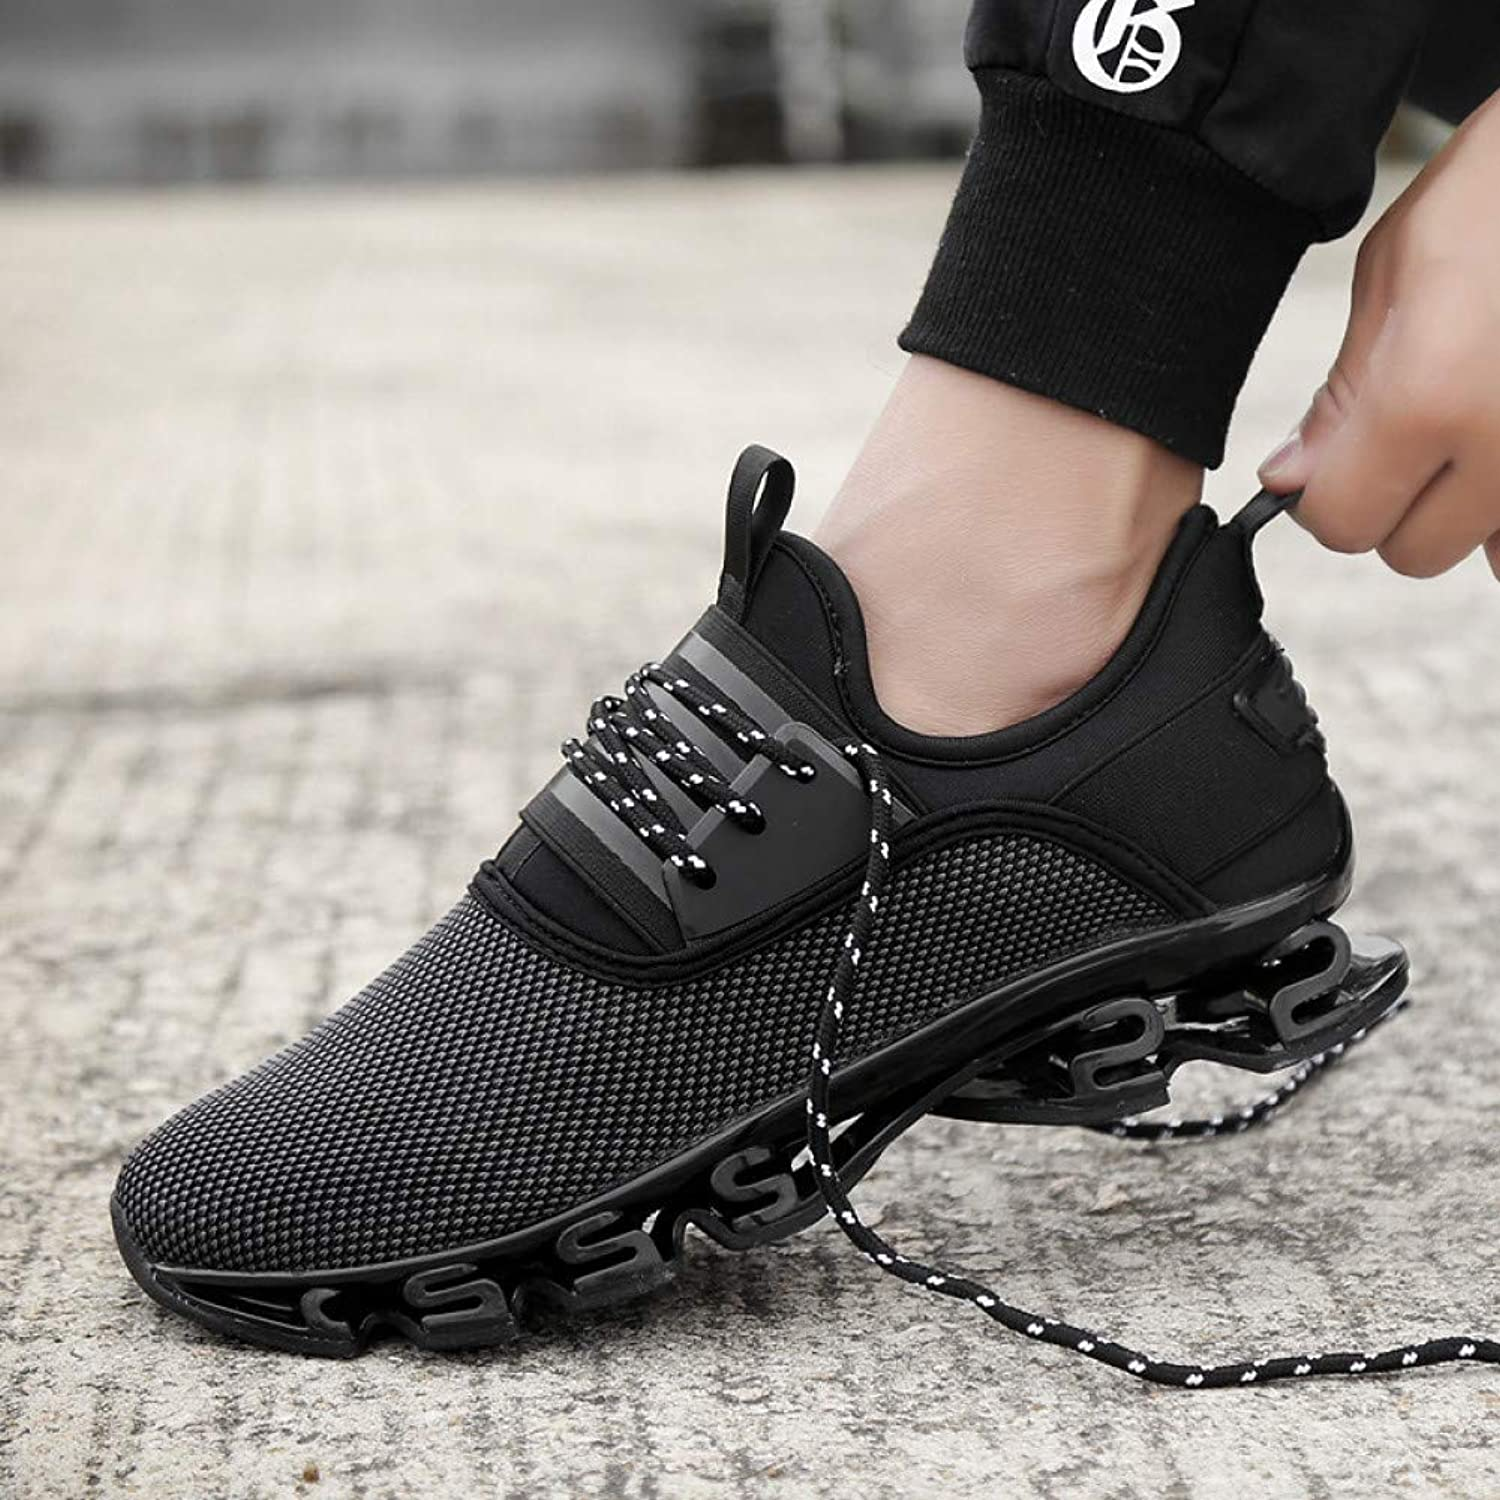 NZXAJKDH New Men Sneaker Breathable Mesh Lace-Up Casual shoes Large Size Wear Resistant Antiskid Male Leisure Movement shoes